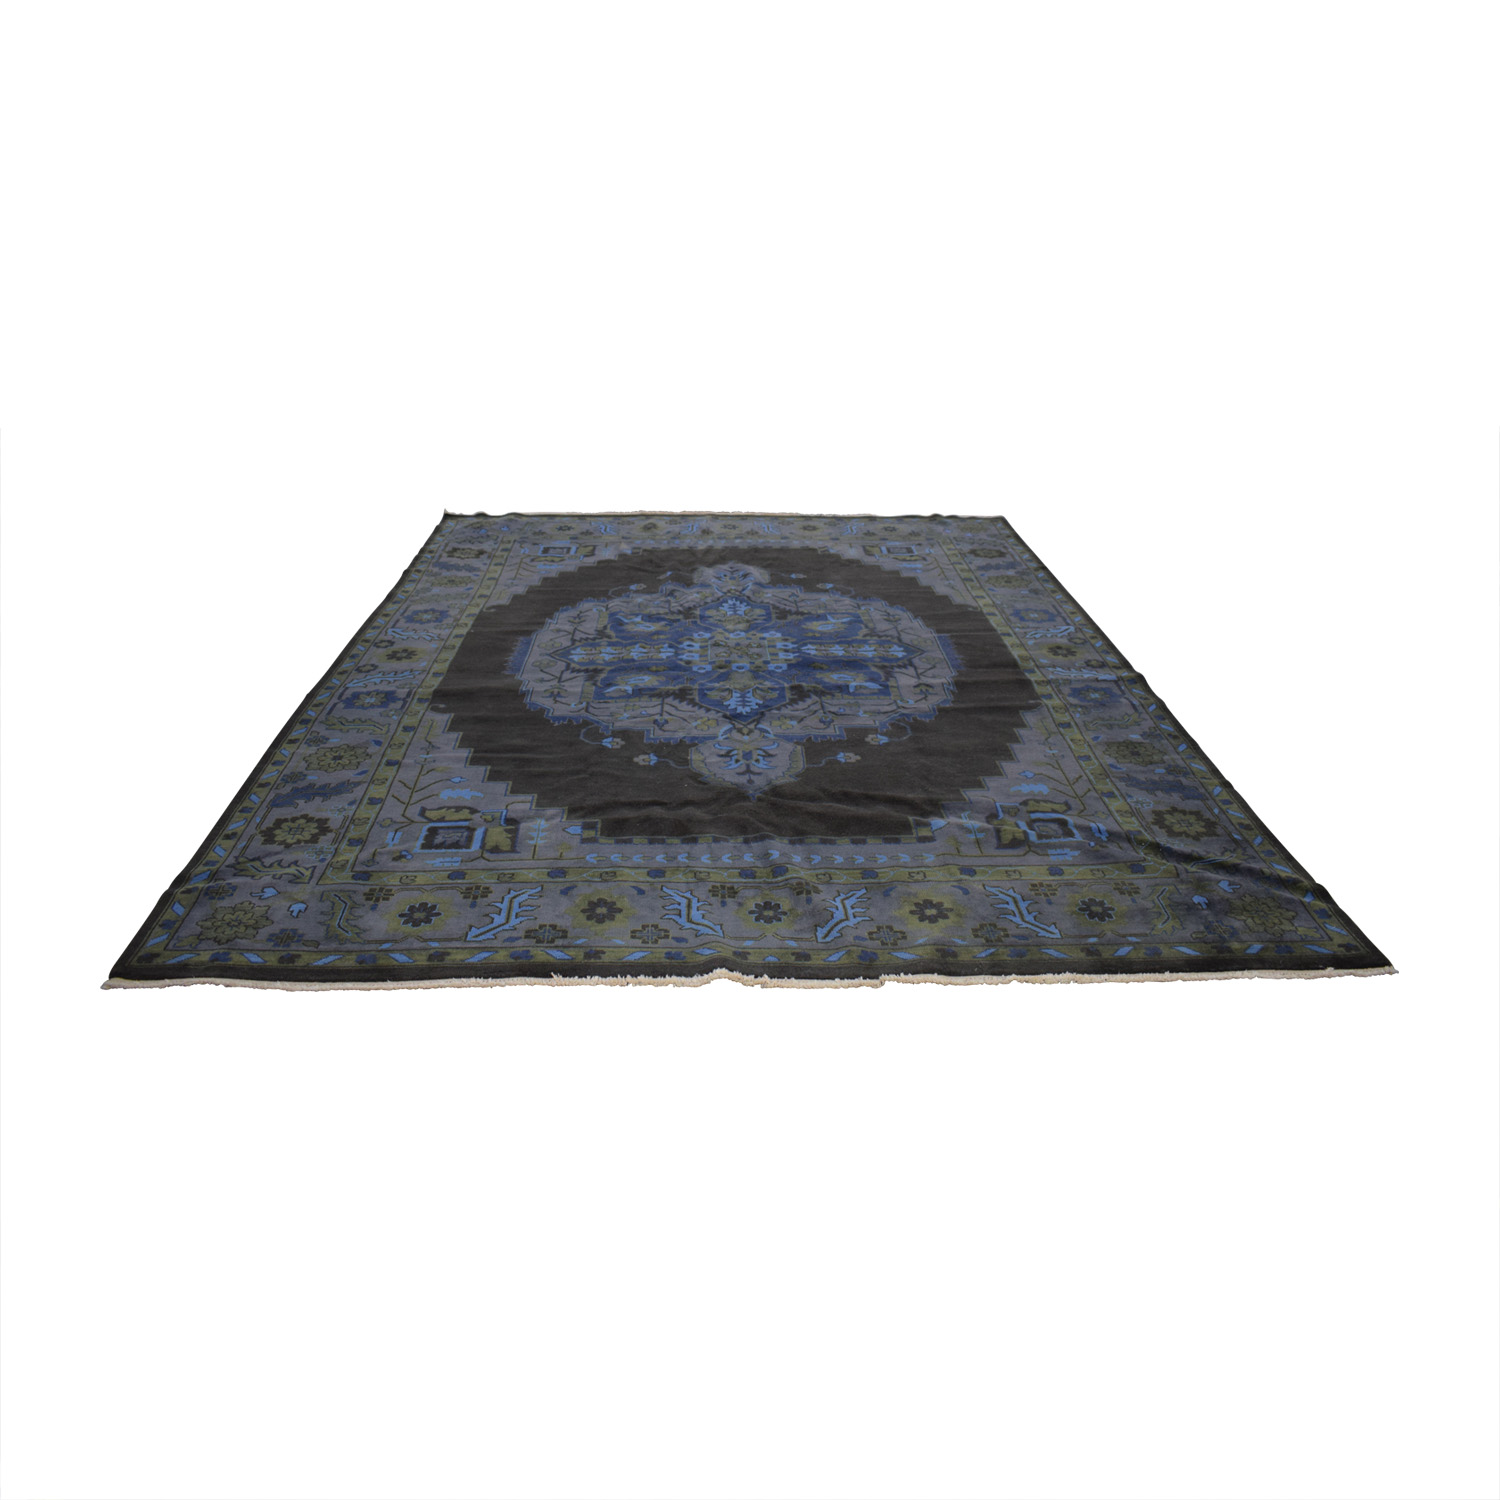 Obeetee Obeetee Handknotted Heriz Blue and Brown Rug nj